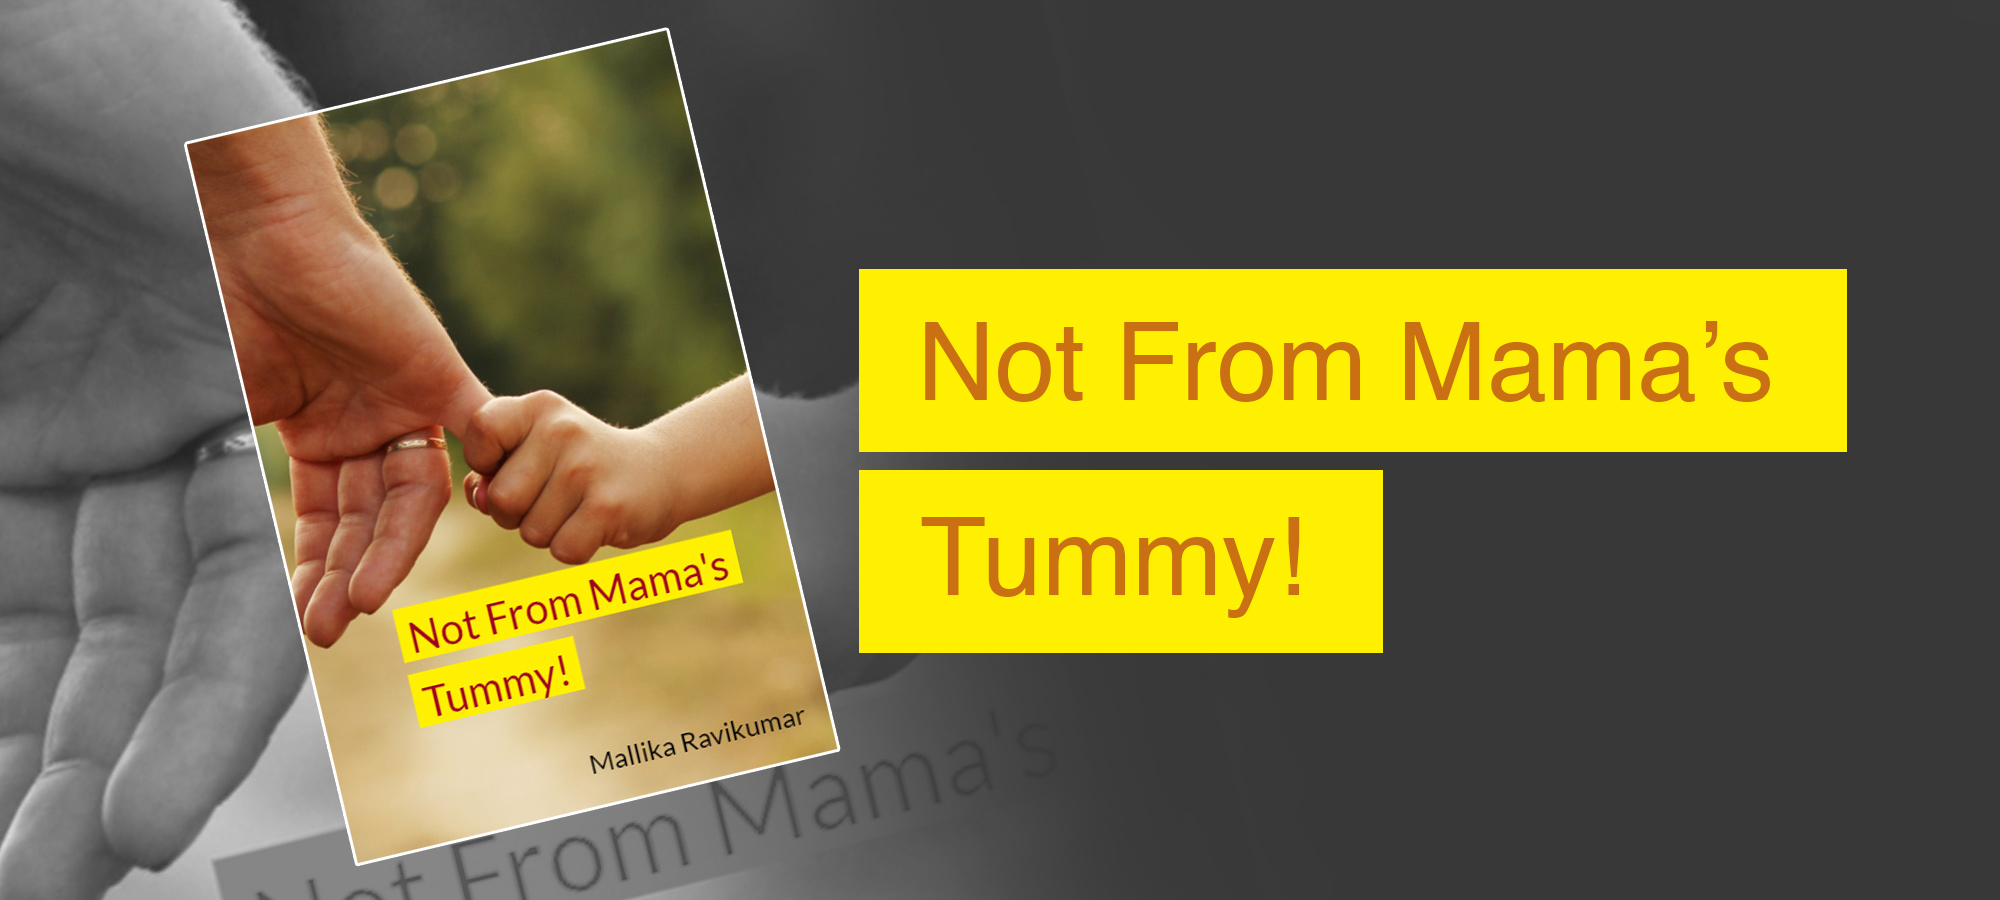 Not-from-mammas-tummy_slider1